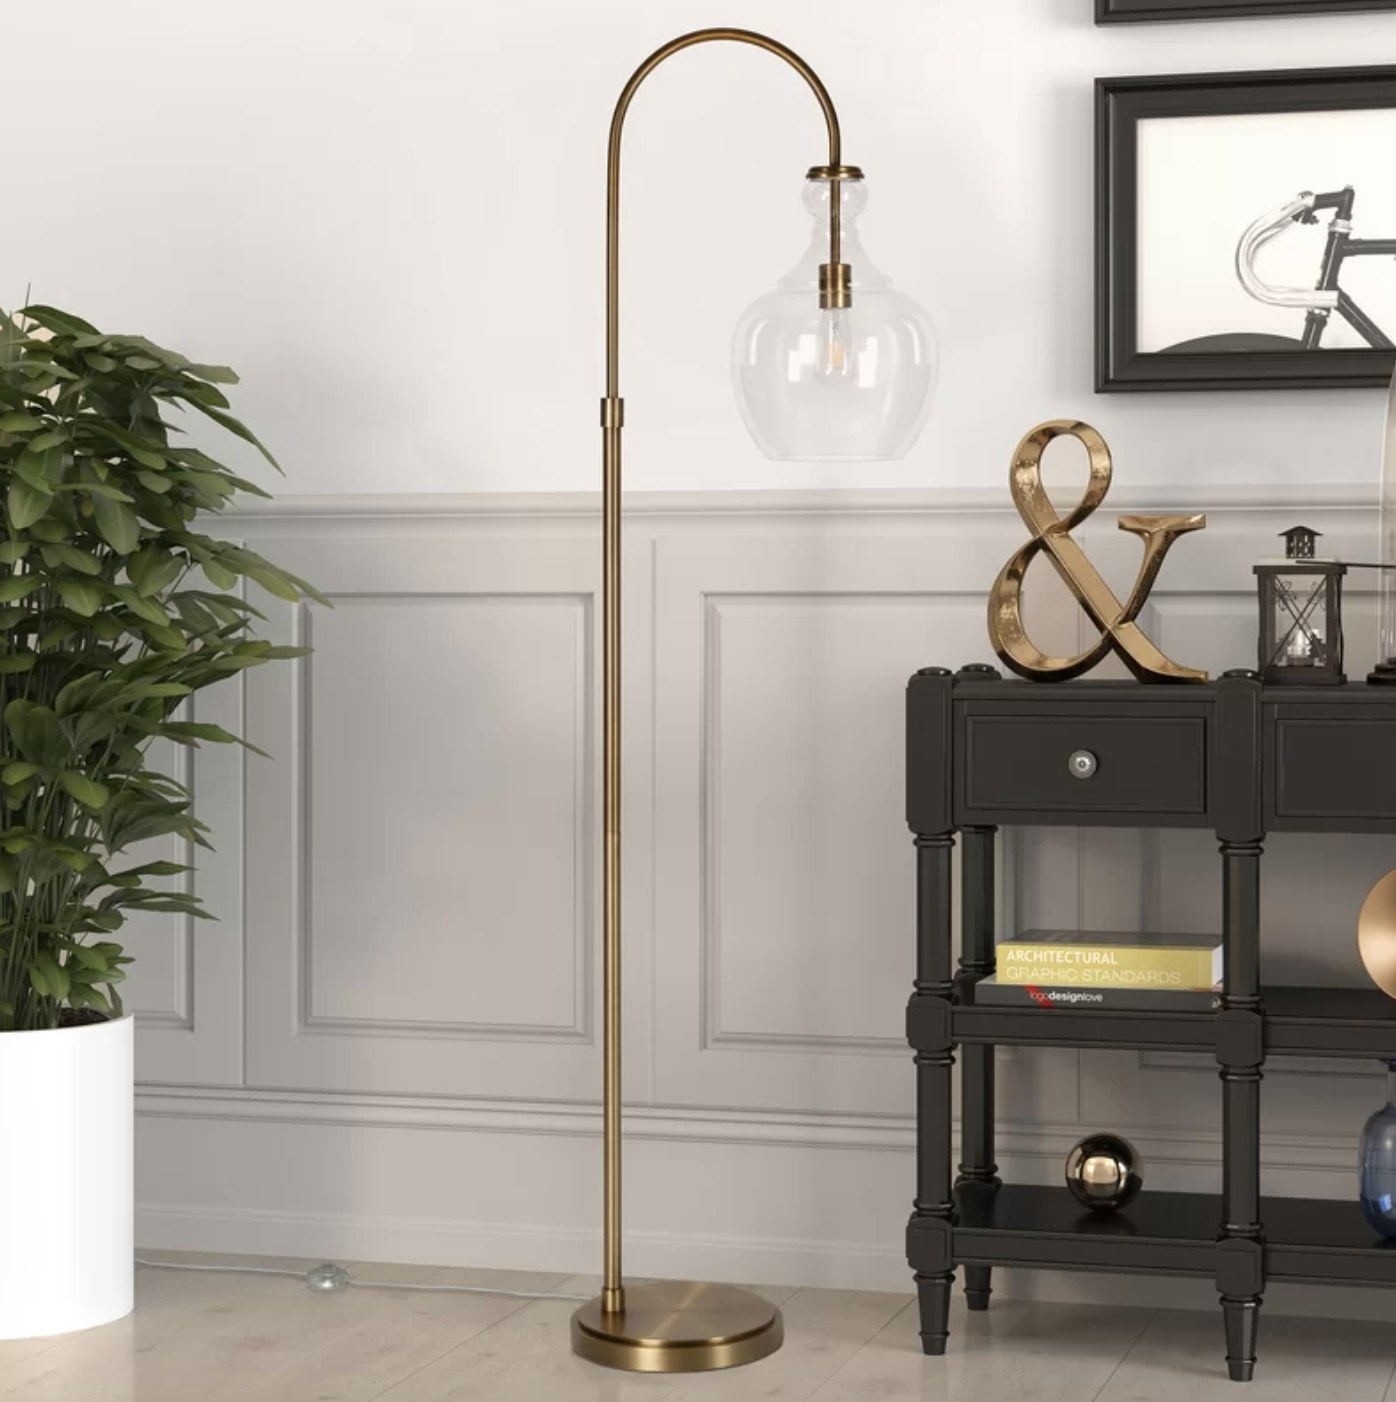 the lamp in brushed brass with a clear glass